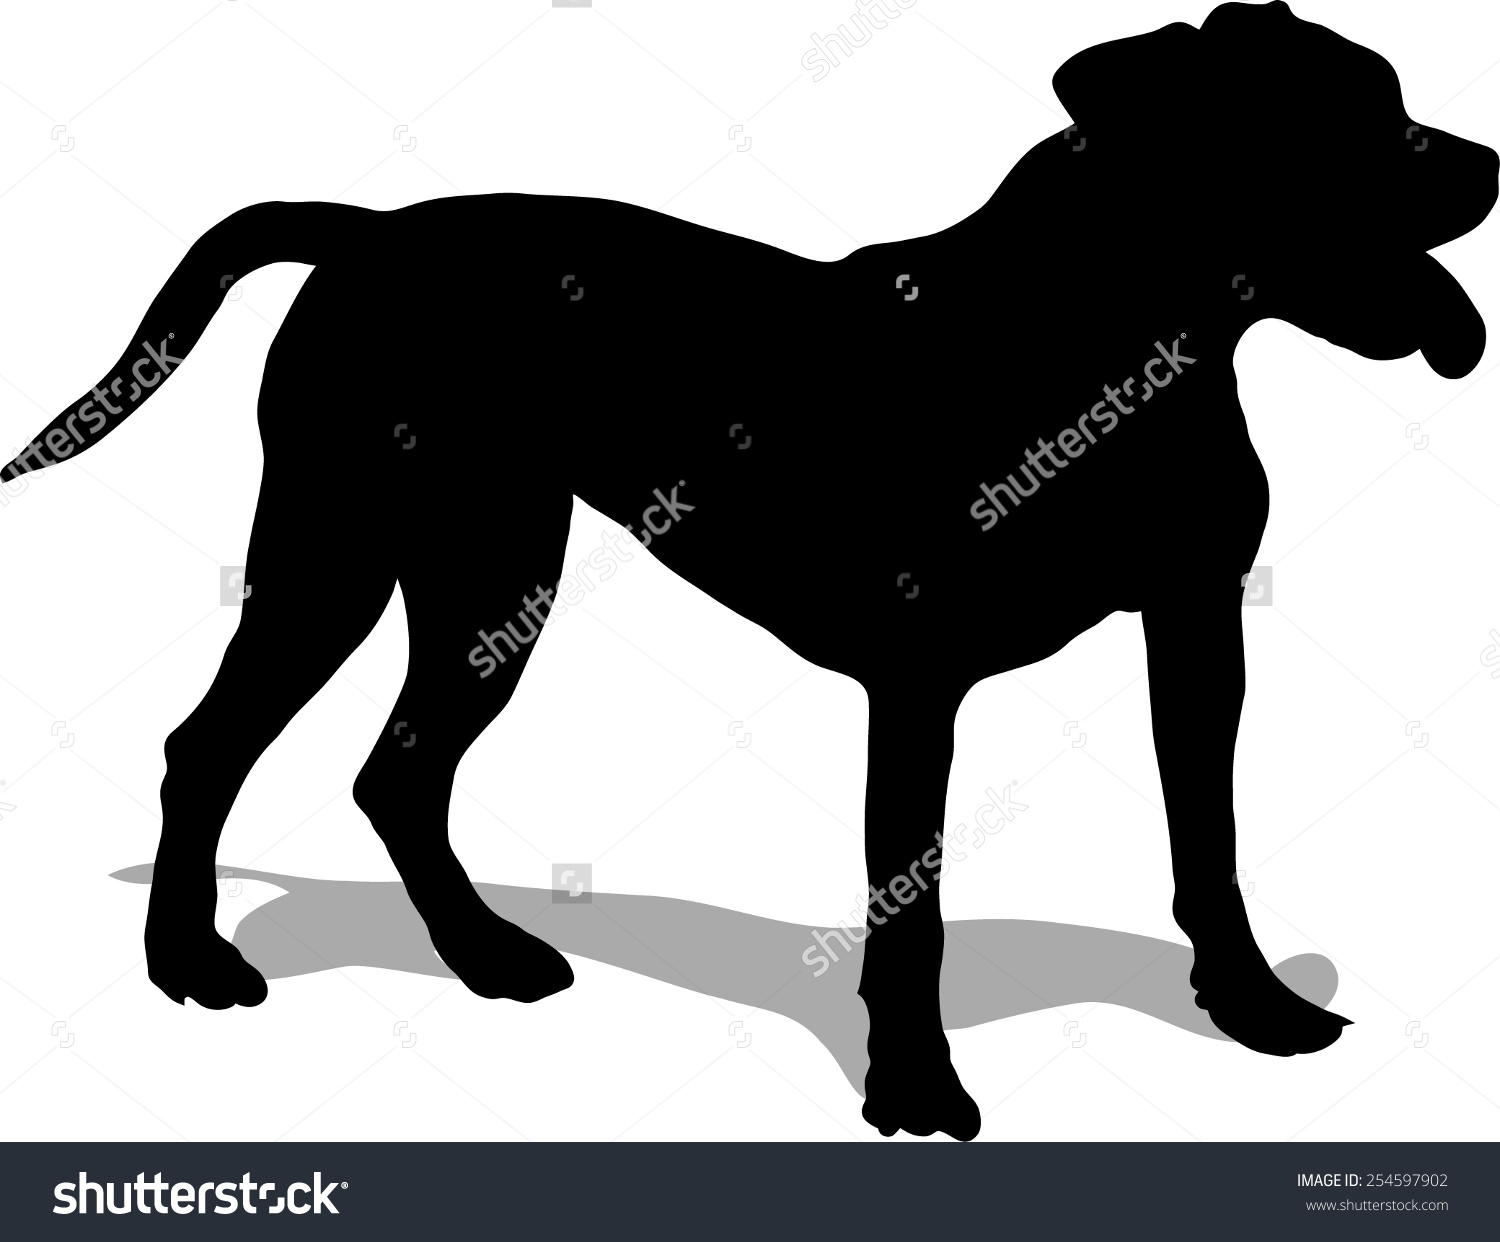 Dog Illustration Pit Bull Black Silhouette Stock Vector 254597902.